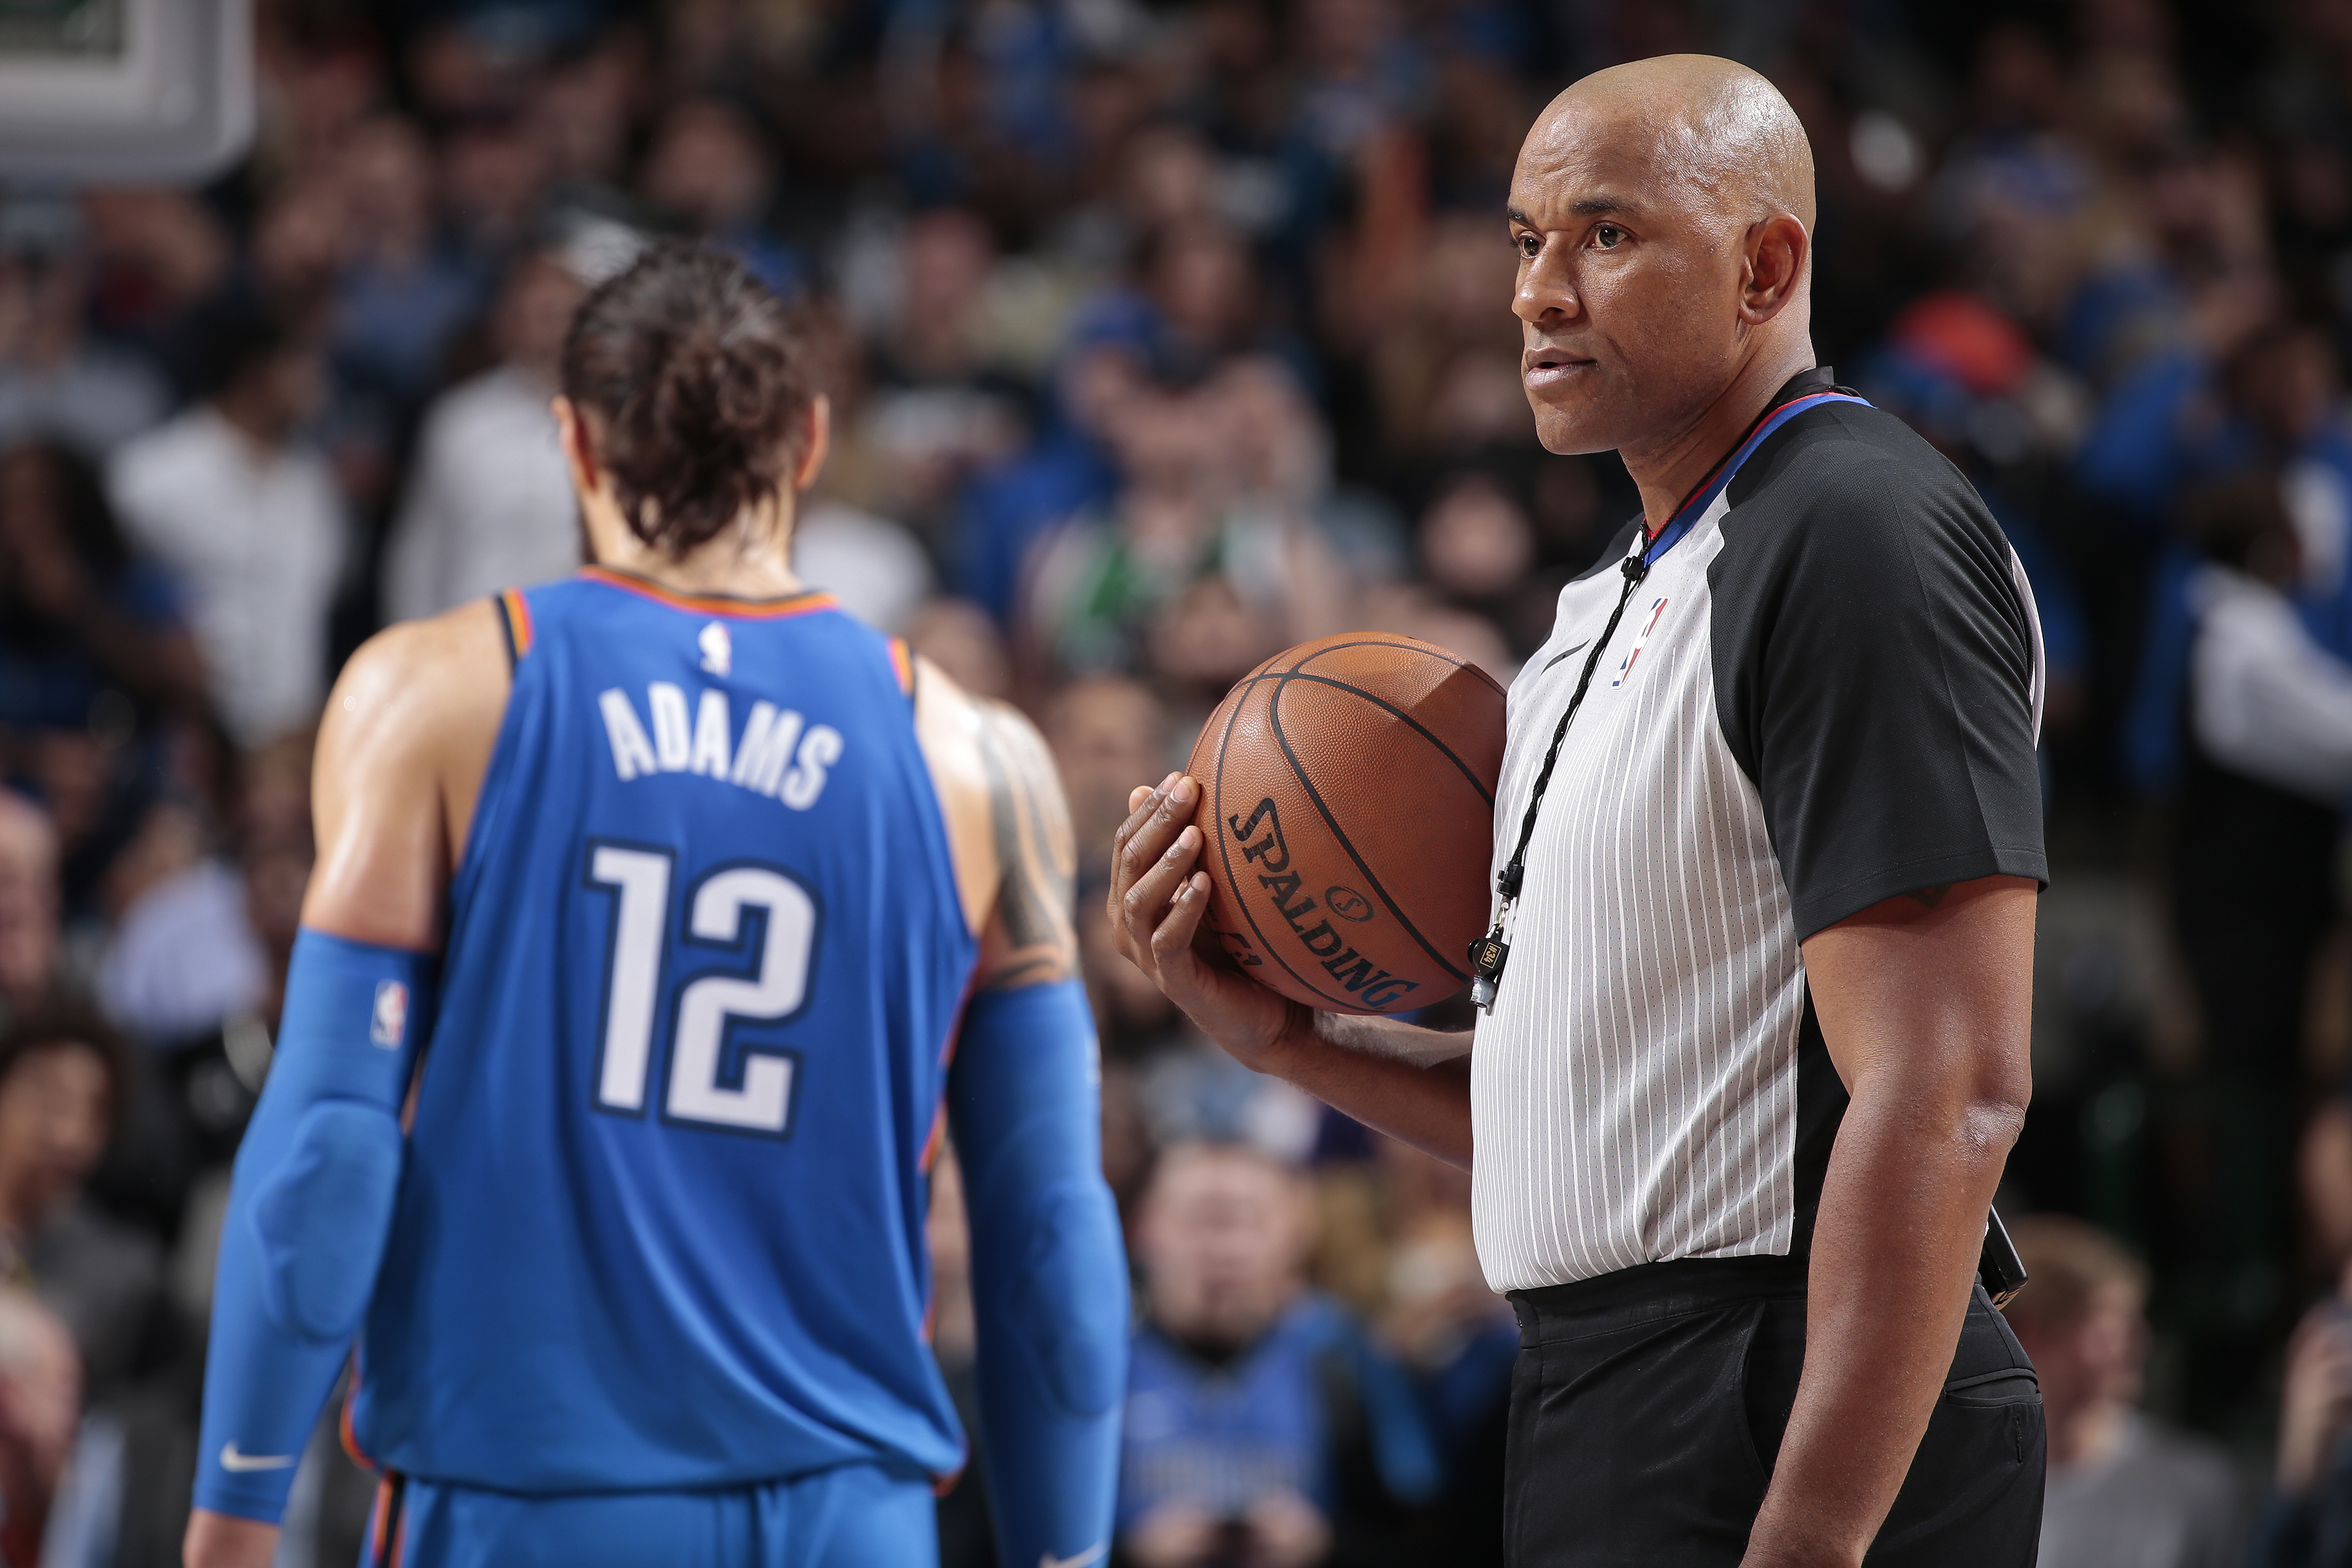 Okc Thunder Impacted By Nba Officials In Back To Back Games